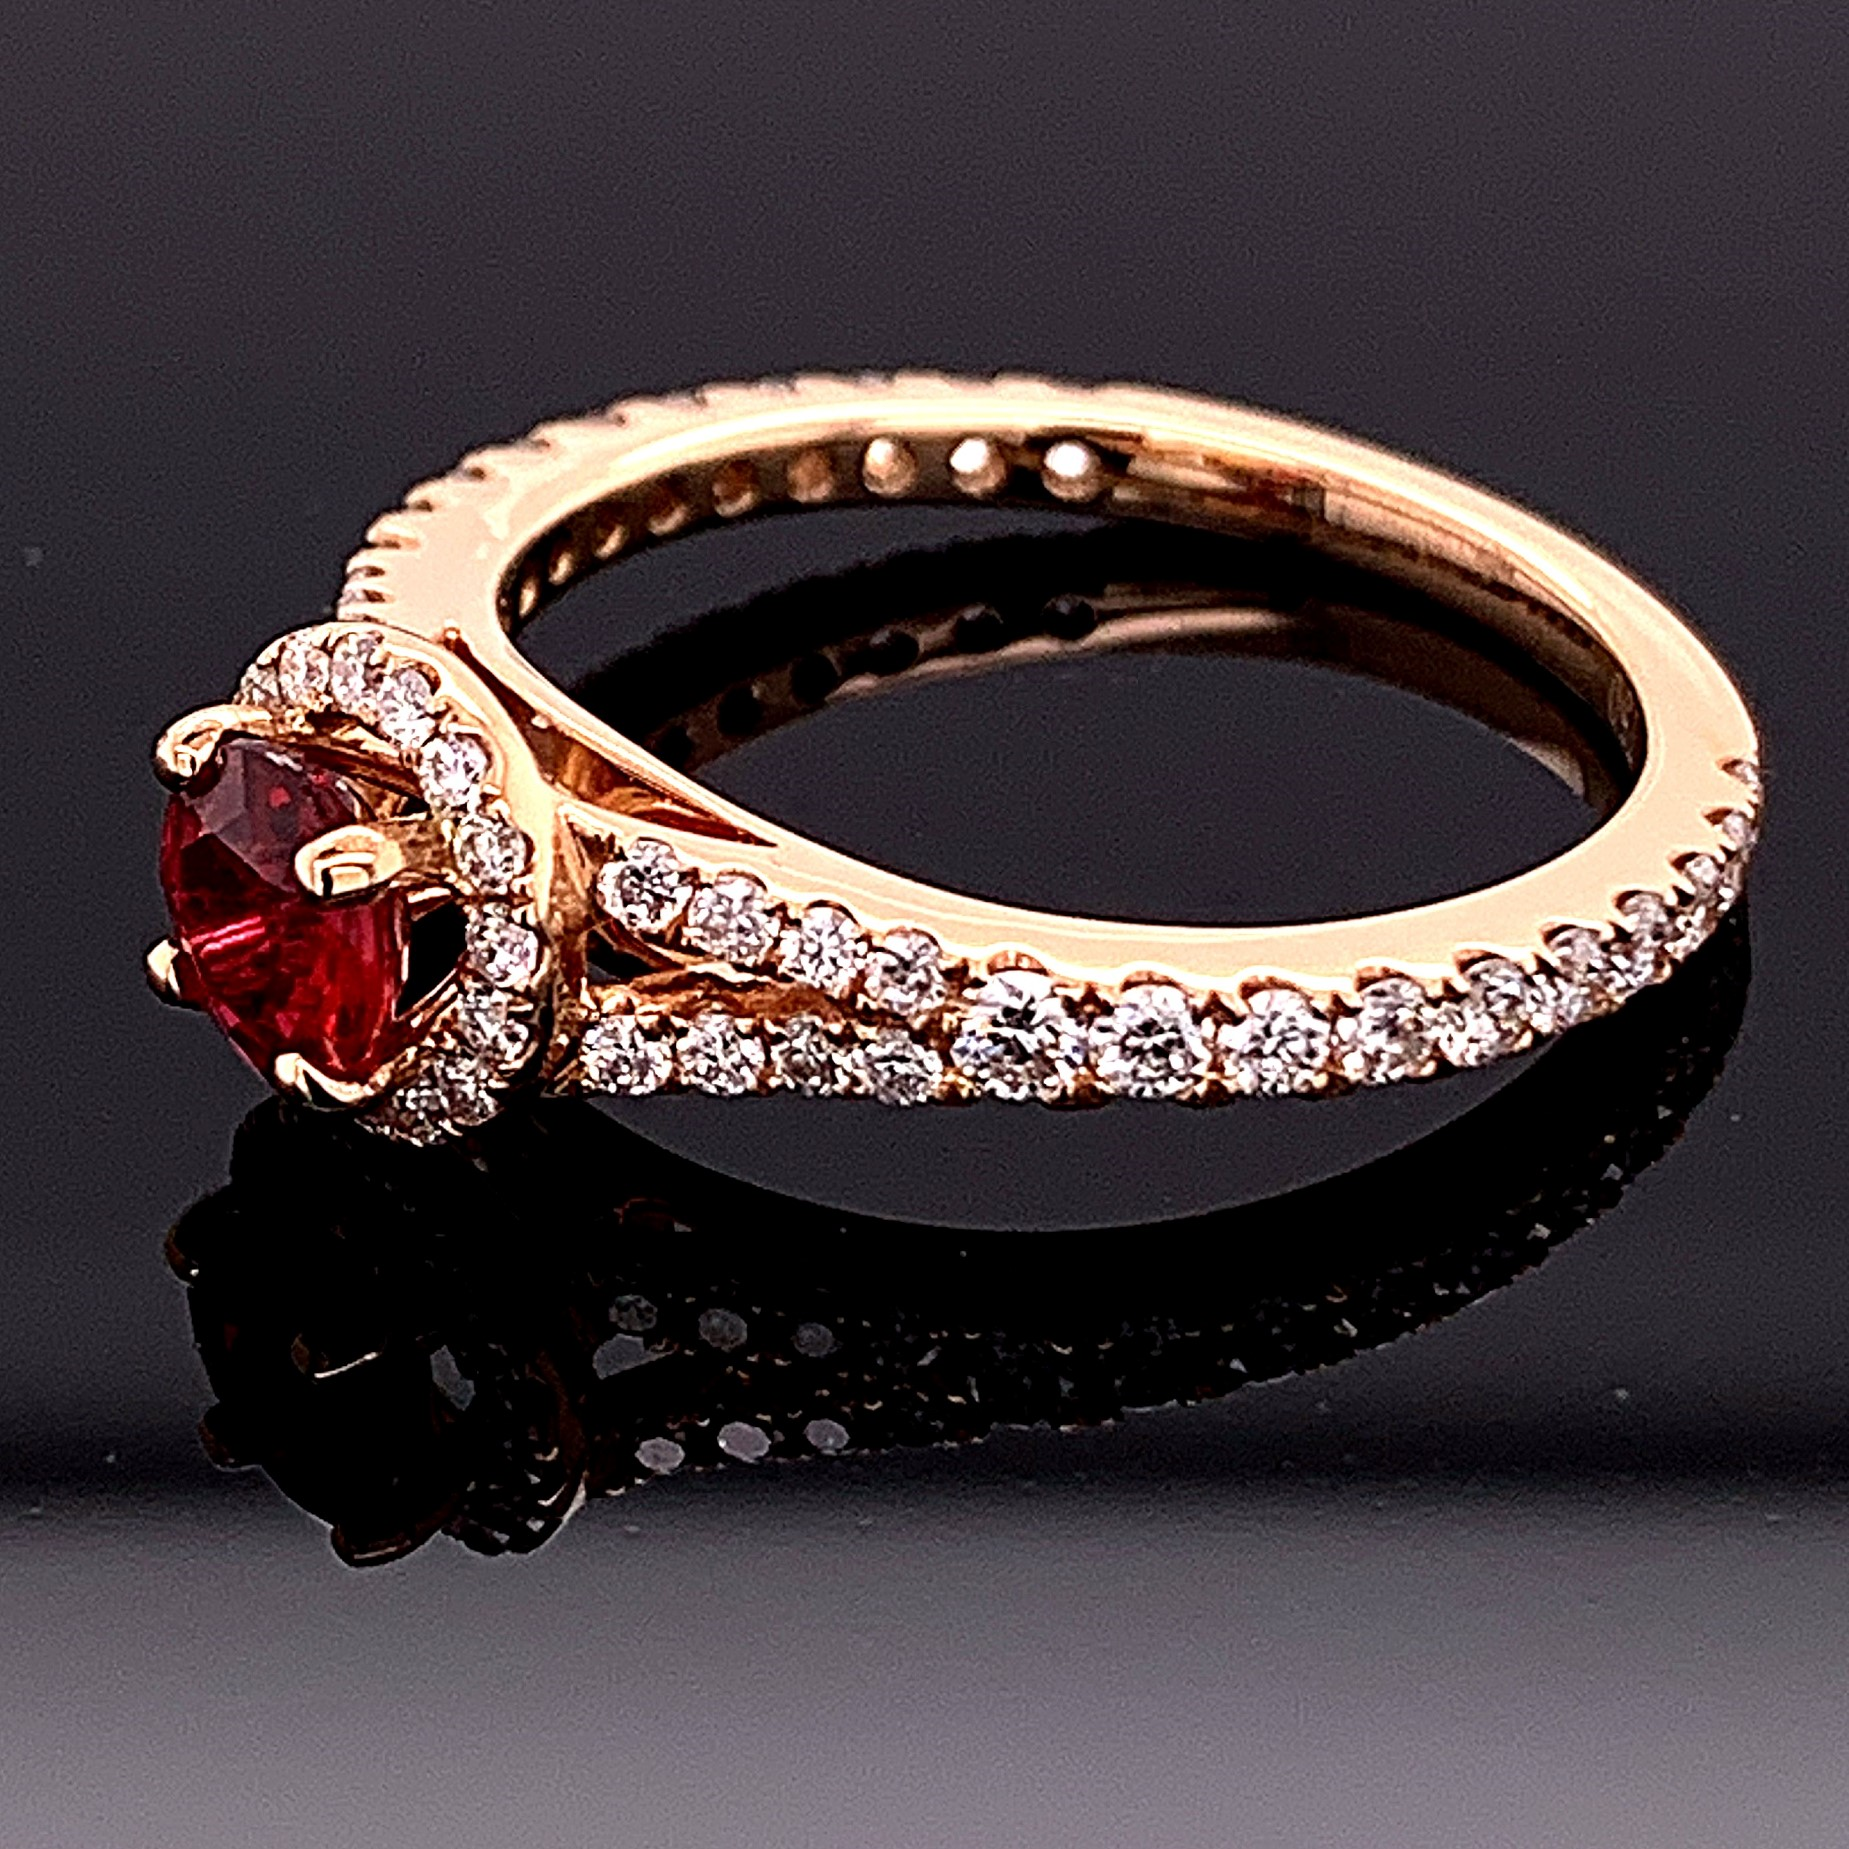 Women's Colored Stone Rings - Women's Gemstone Ring - image #2